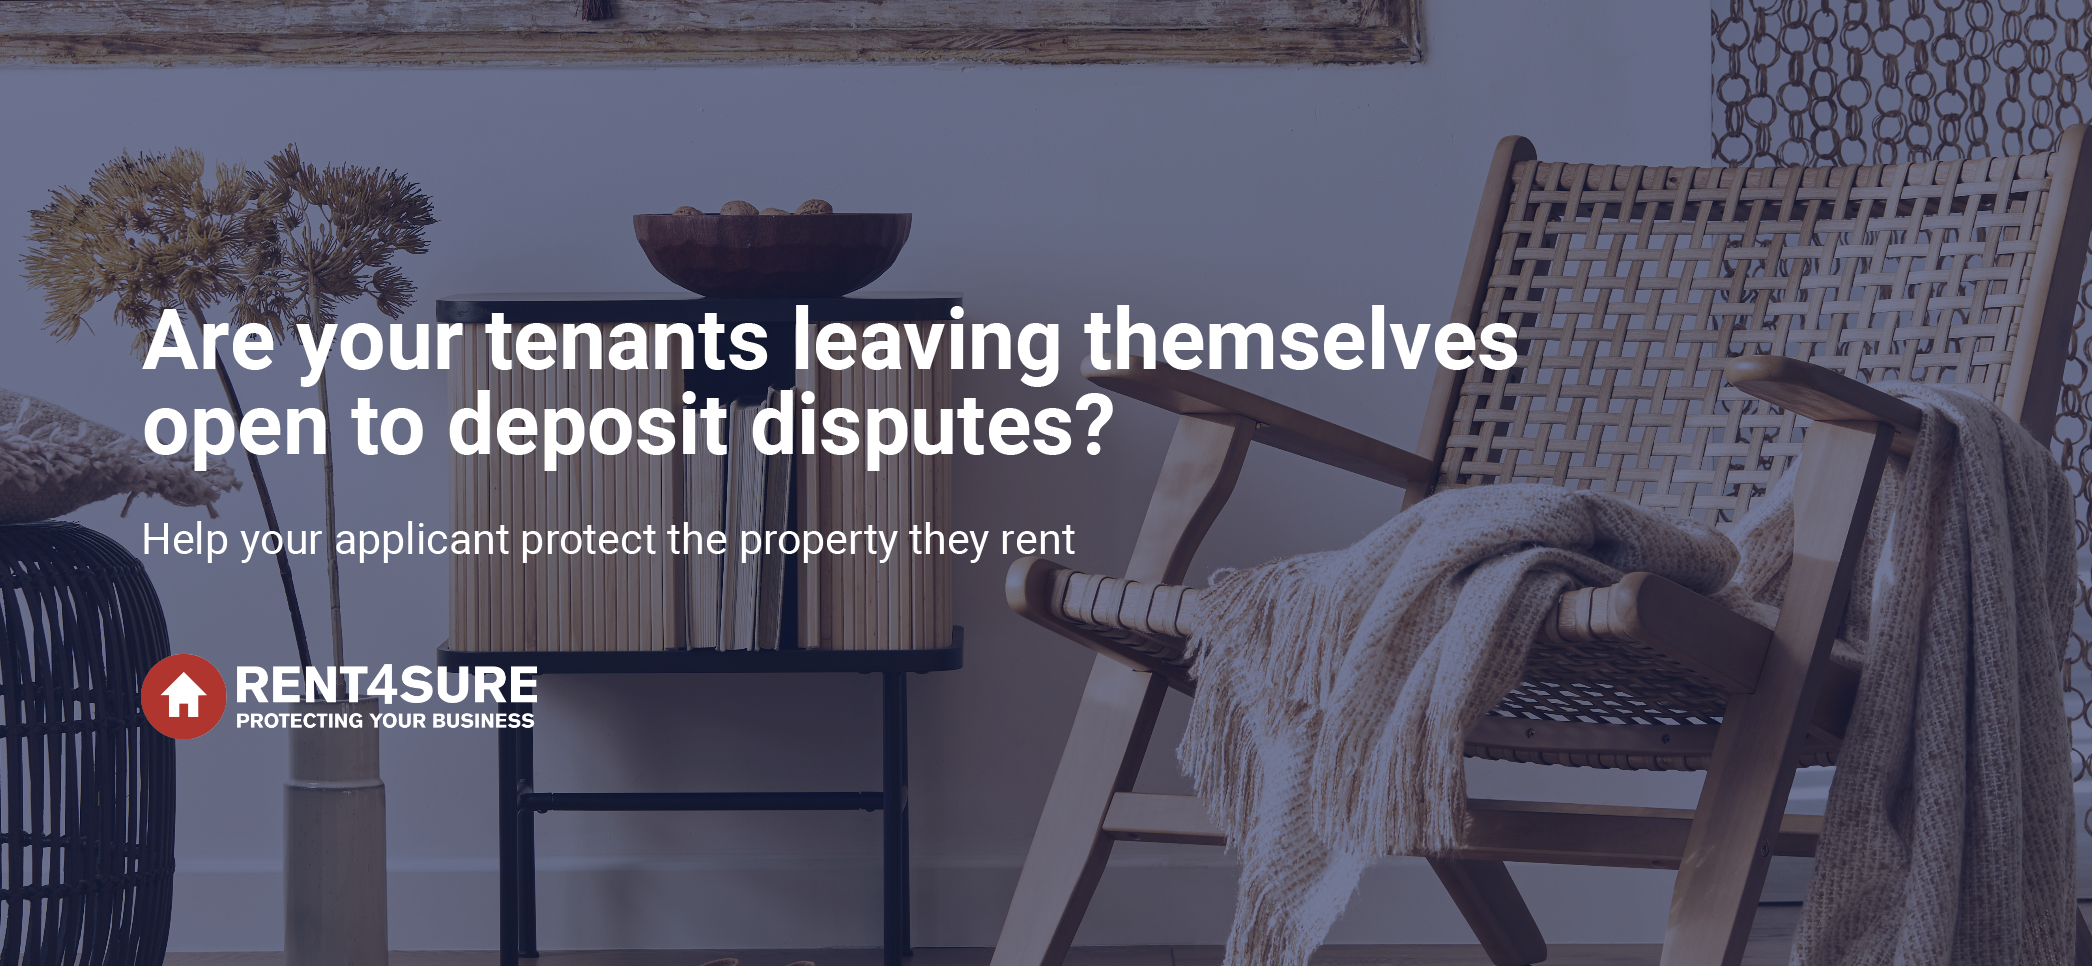 Are your tenants leaving themselves open to deposit disputes?